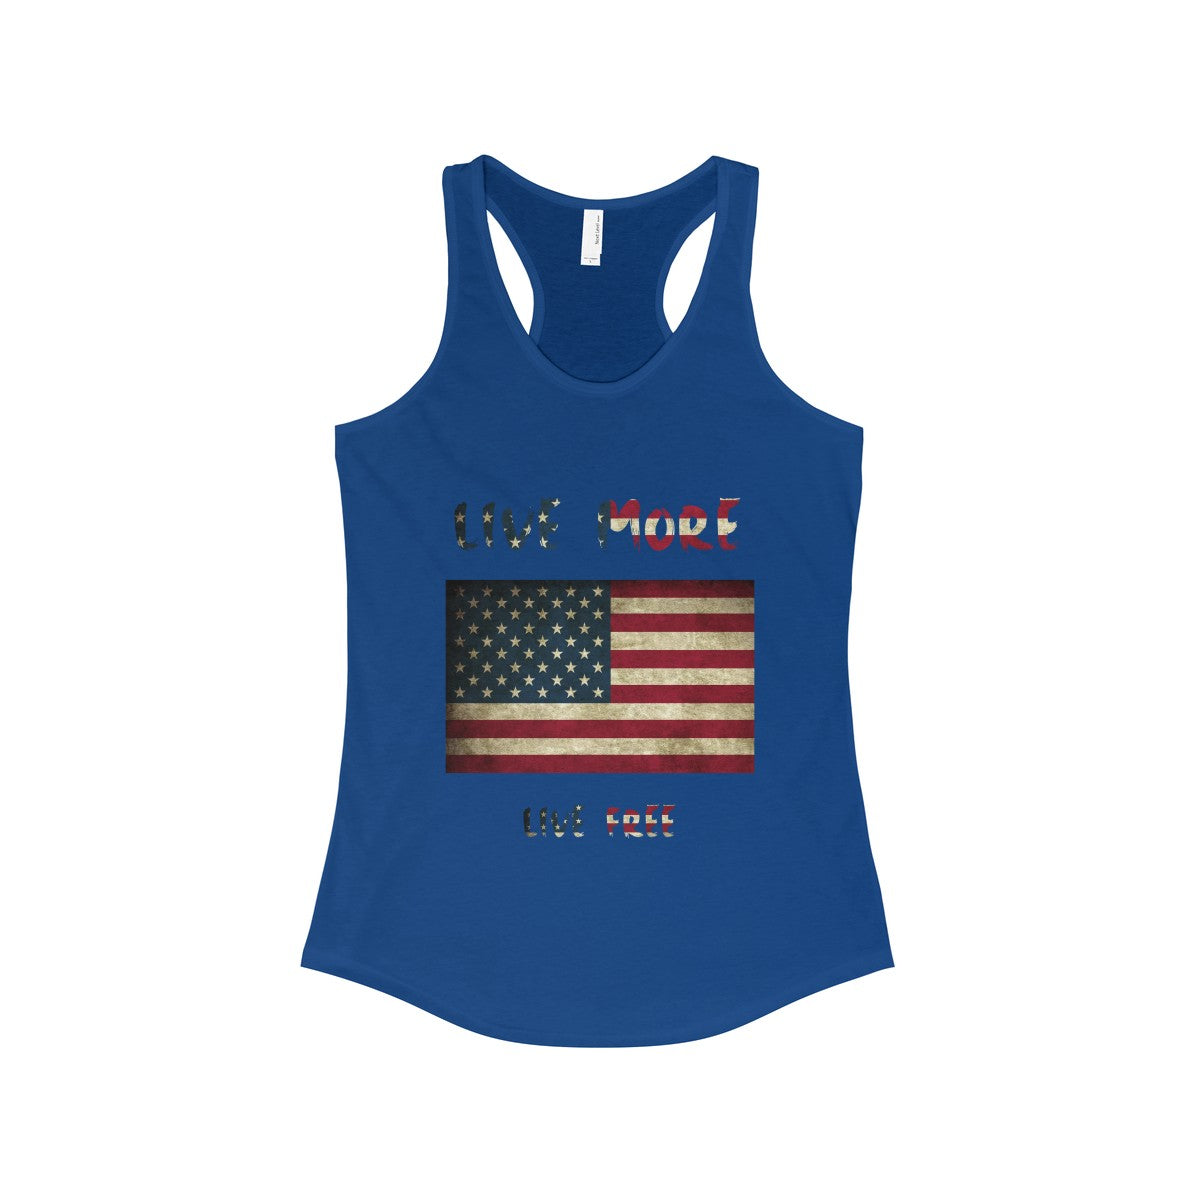 Live More Live Free American Flag Women's Racerback Tank - Live More